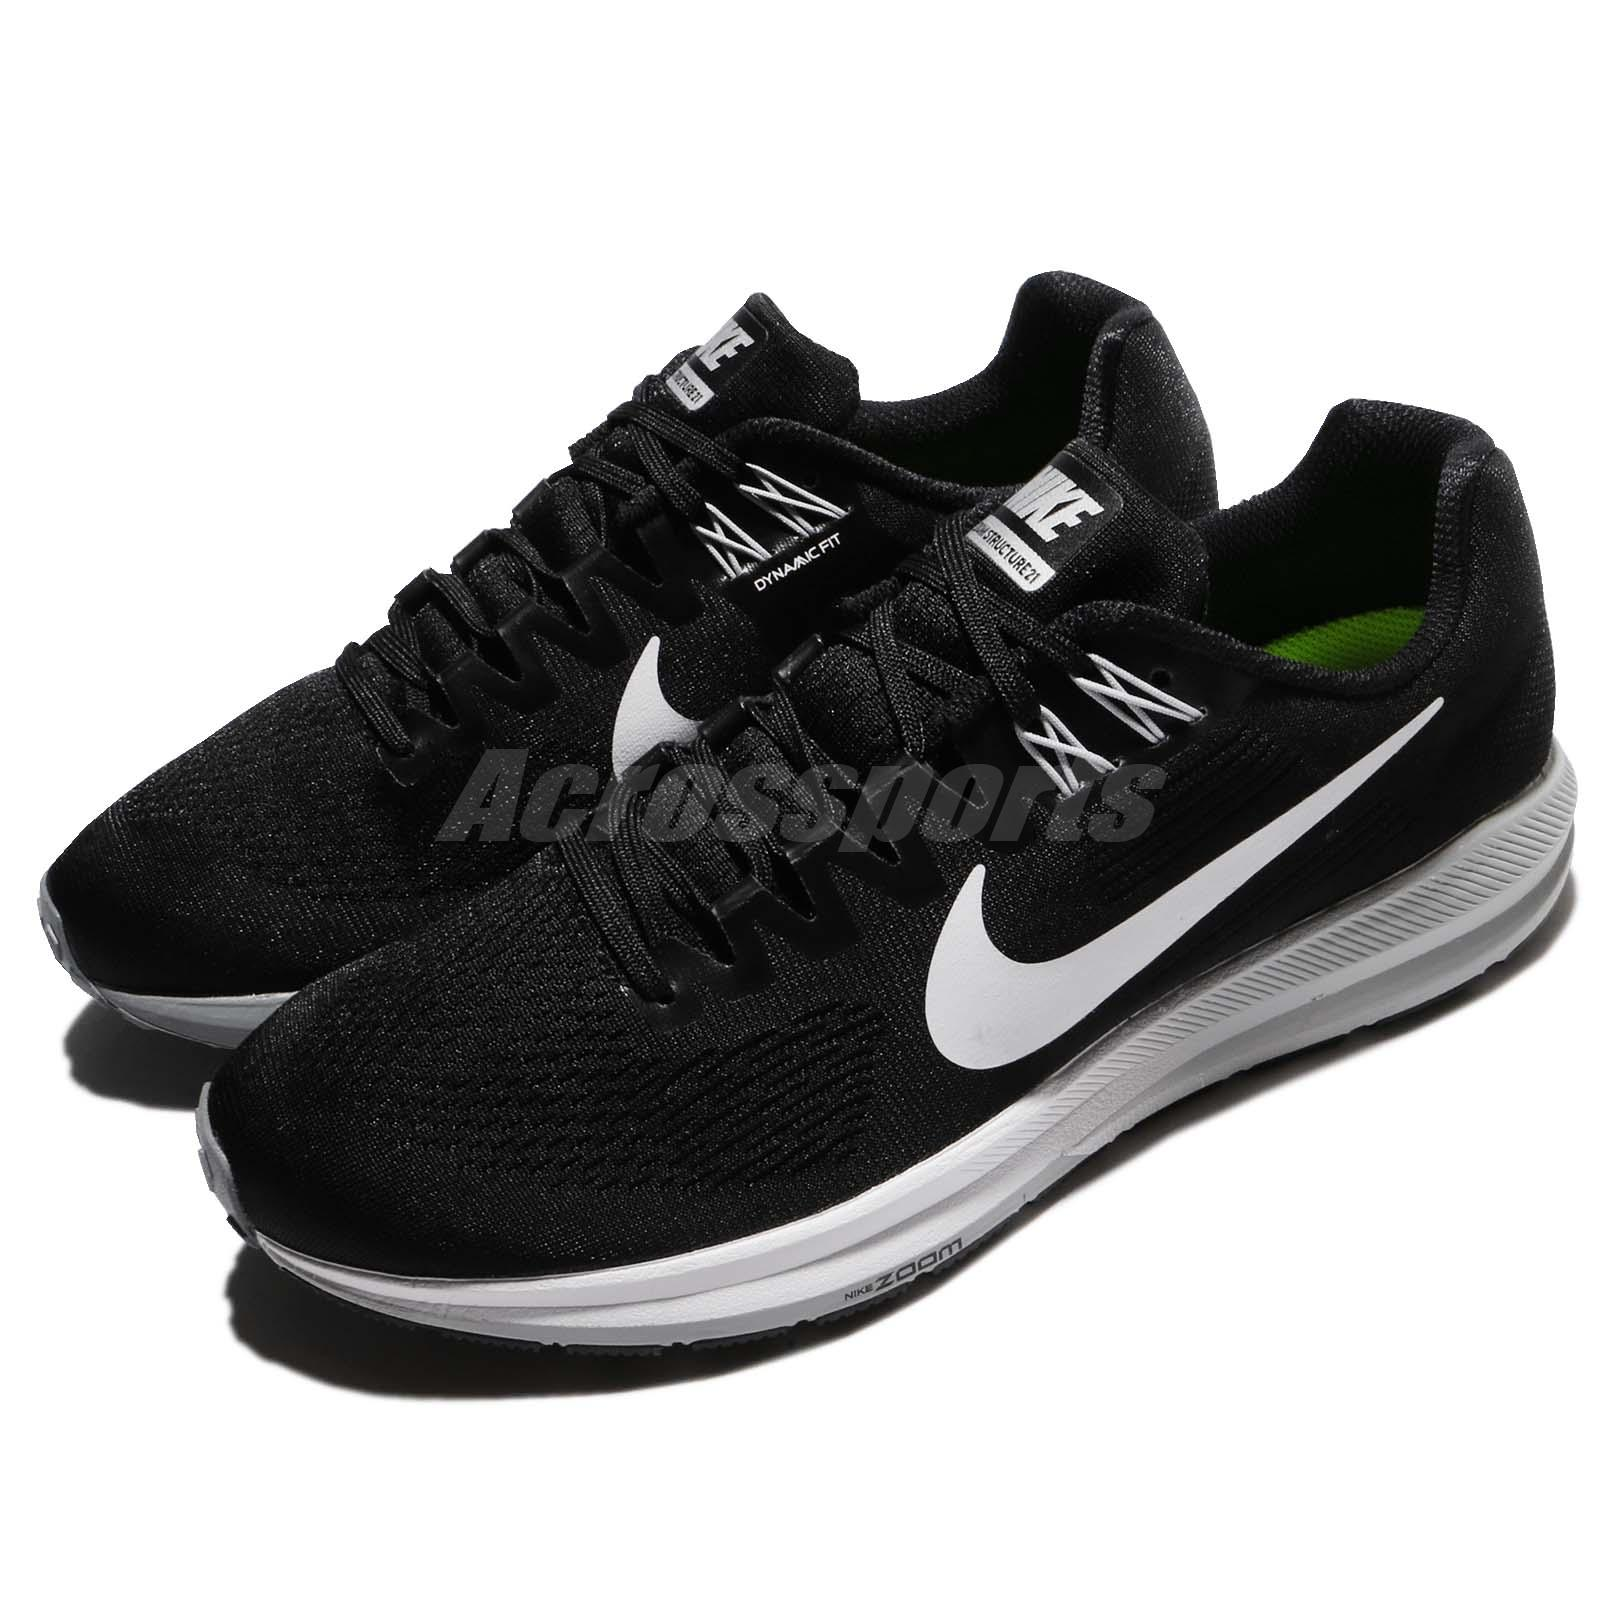 buy online f42ba 5d1dd Details about Nike Air Zoom Structure 21 Black White Men Running Shoes  Sneakers 904695-001